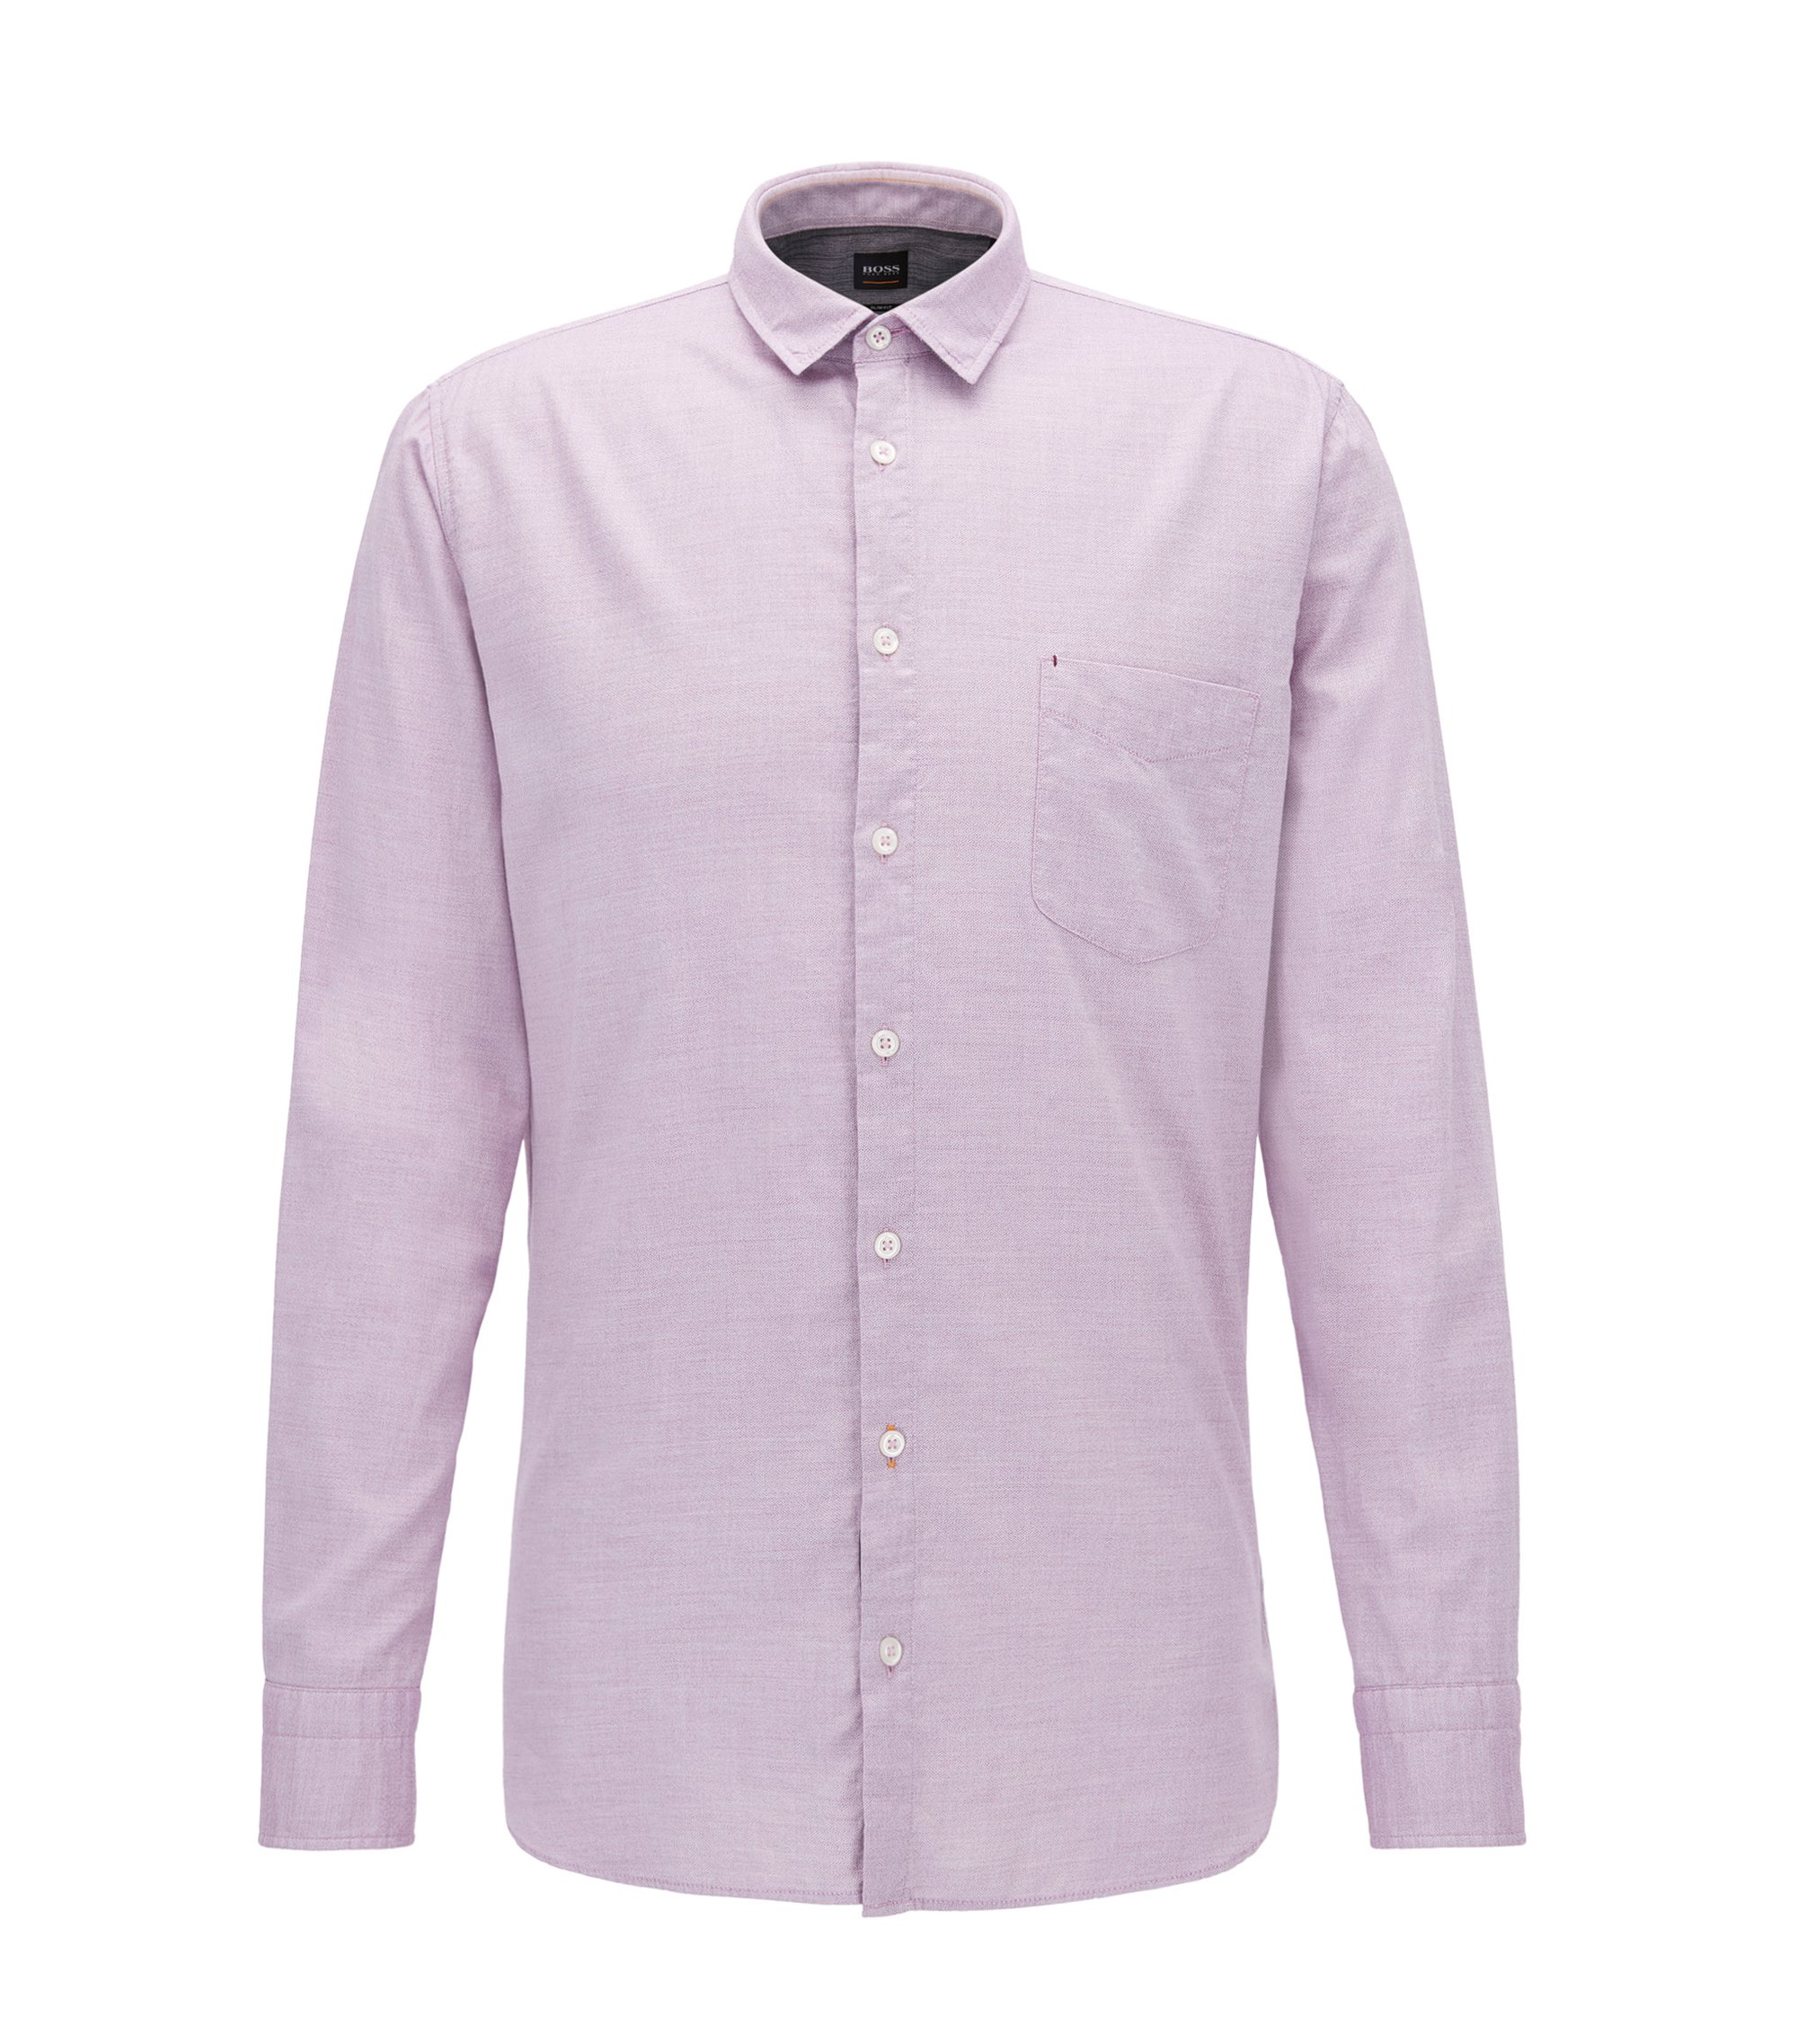 Slim-fit shirt in a mouliné cotton blend, light pink